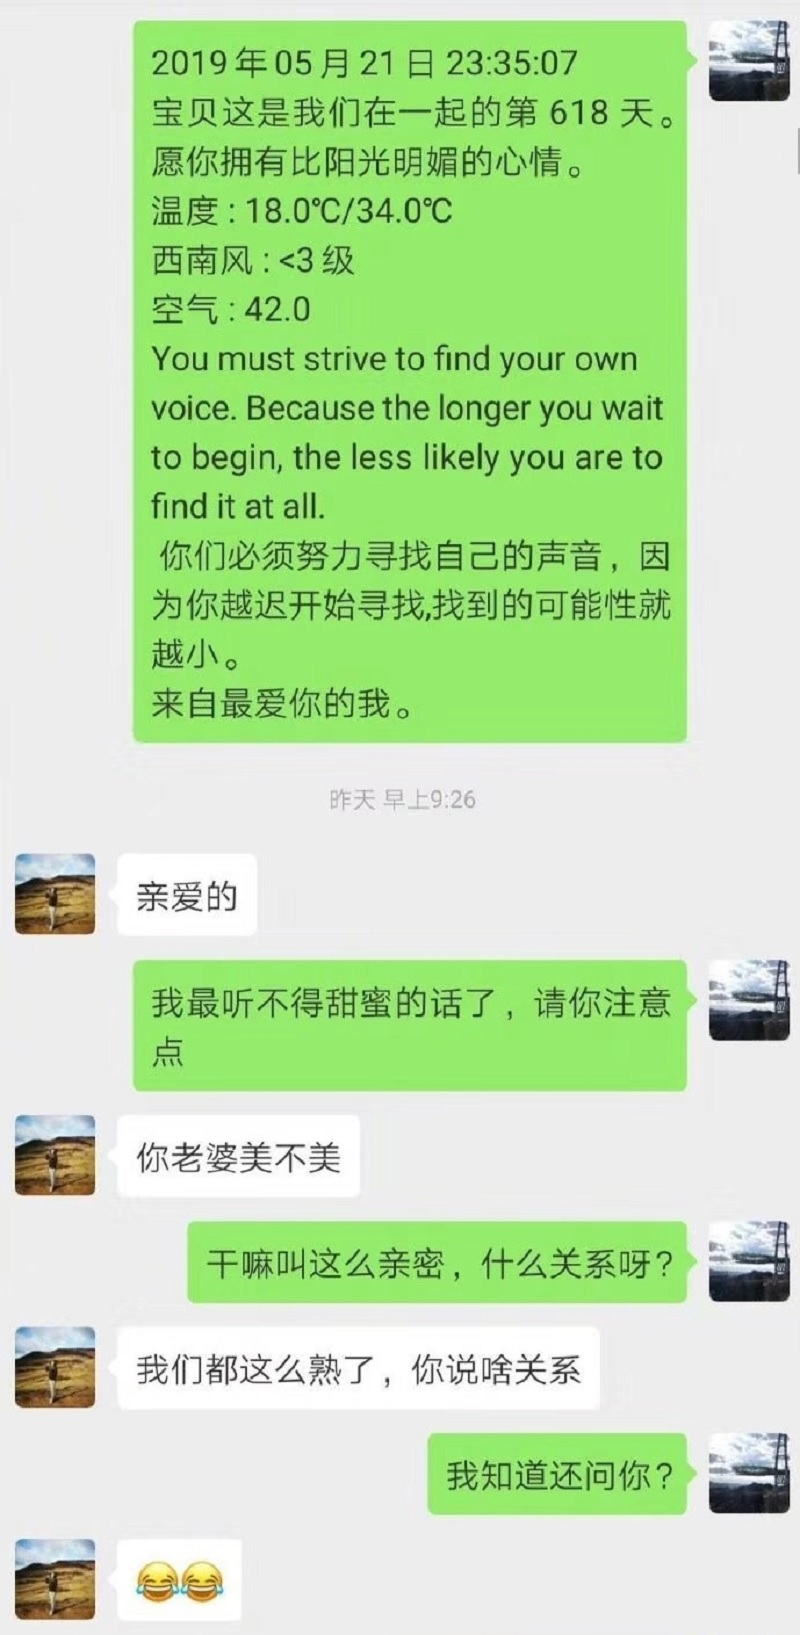 Chinese Programmer Creates Chat Bot to Reply to His Girlfriend While He's at Work